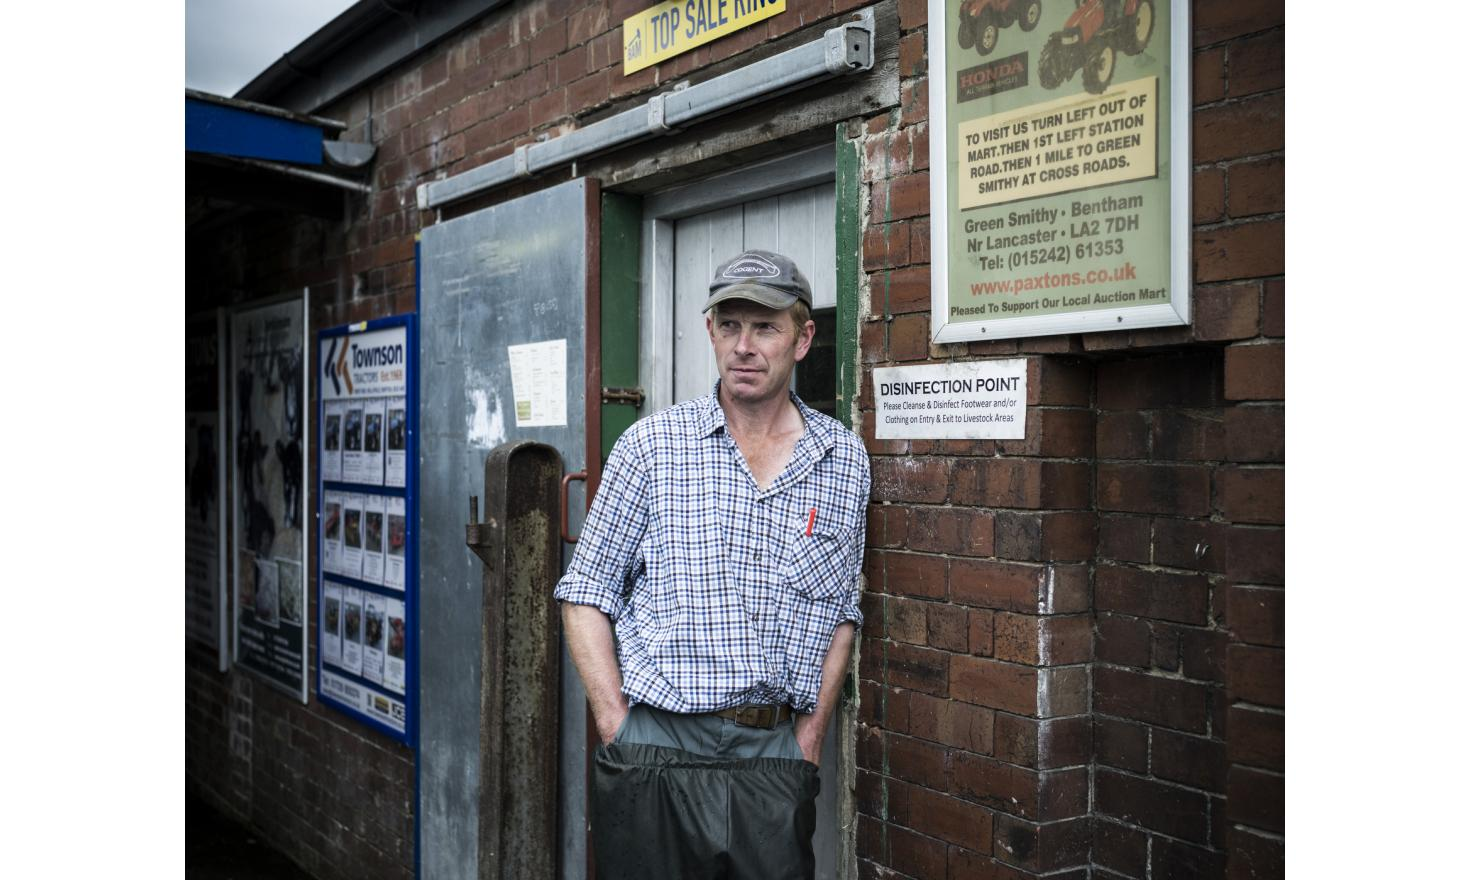 Bryan Carter, a Yorkshire sheep-farmer, pictured at Bentham Auction Mart. Sheep, cattle and pigs are sold here, essentially to meat wholesalers. Many local sheep farmers voted to leave the UE in the referendum, despite the loss of generous subsidies.